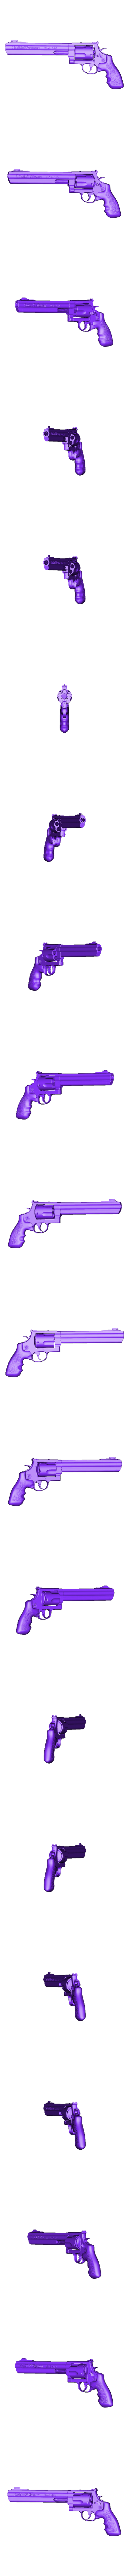 Smith and Wesson (repaired).stl Download OBJ file Smith & Wesson • 3D printable object, tex123